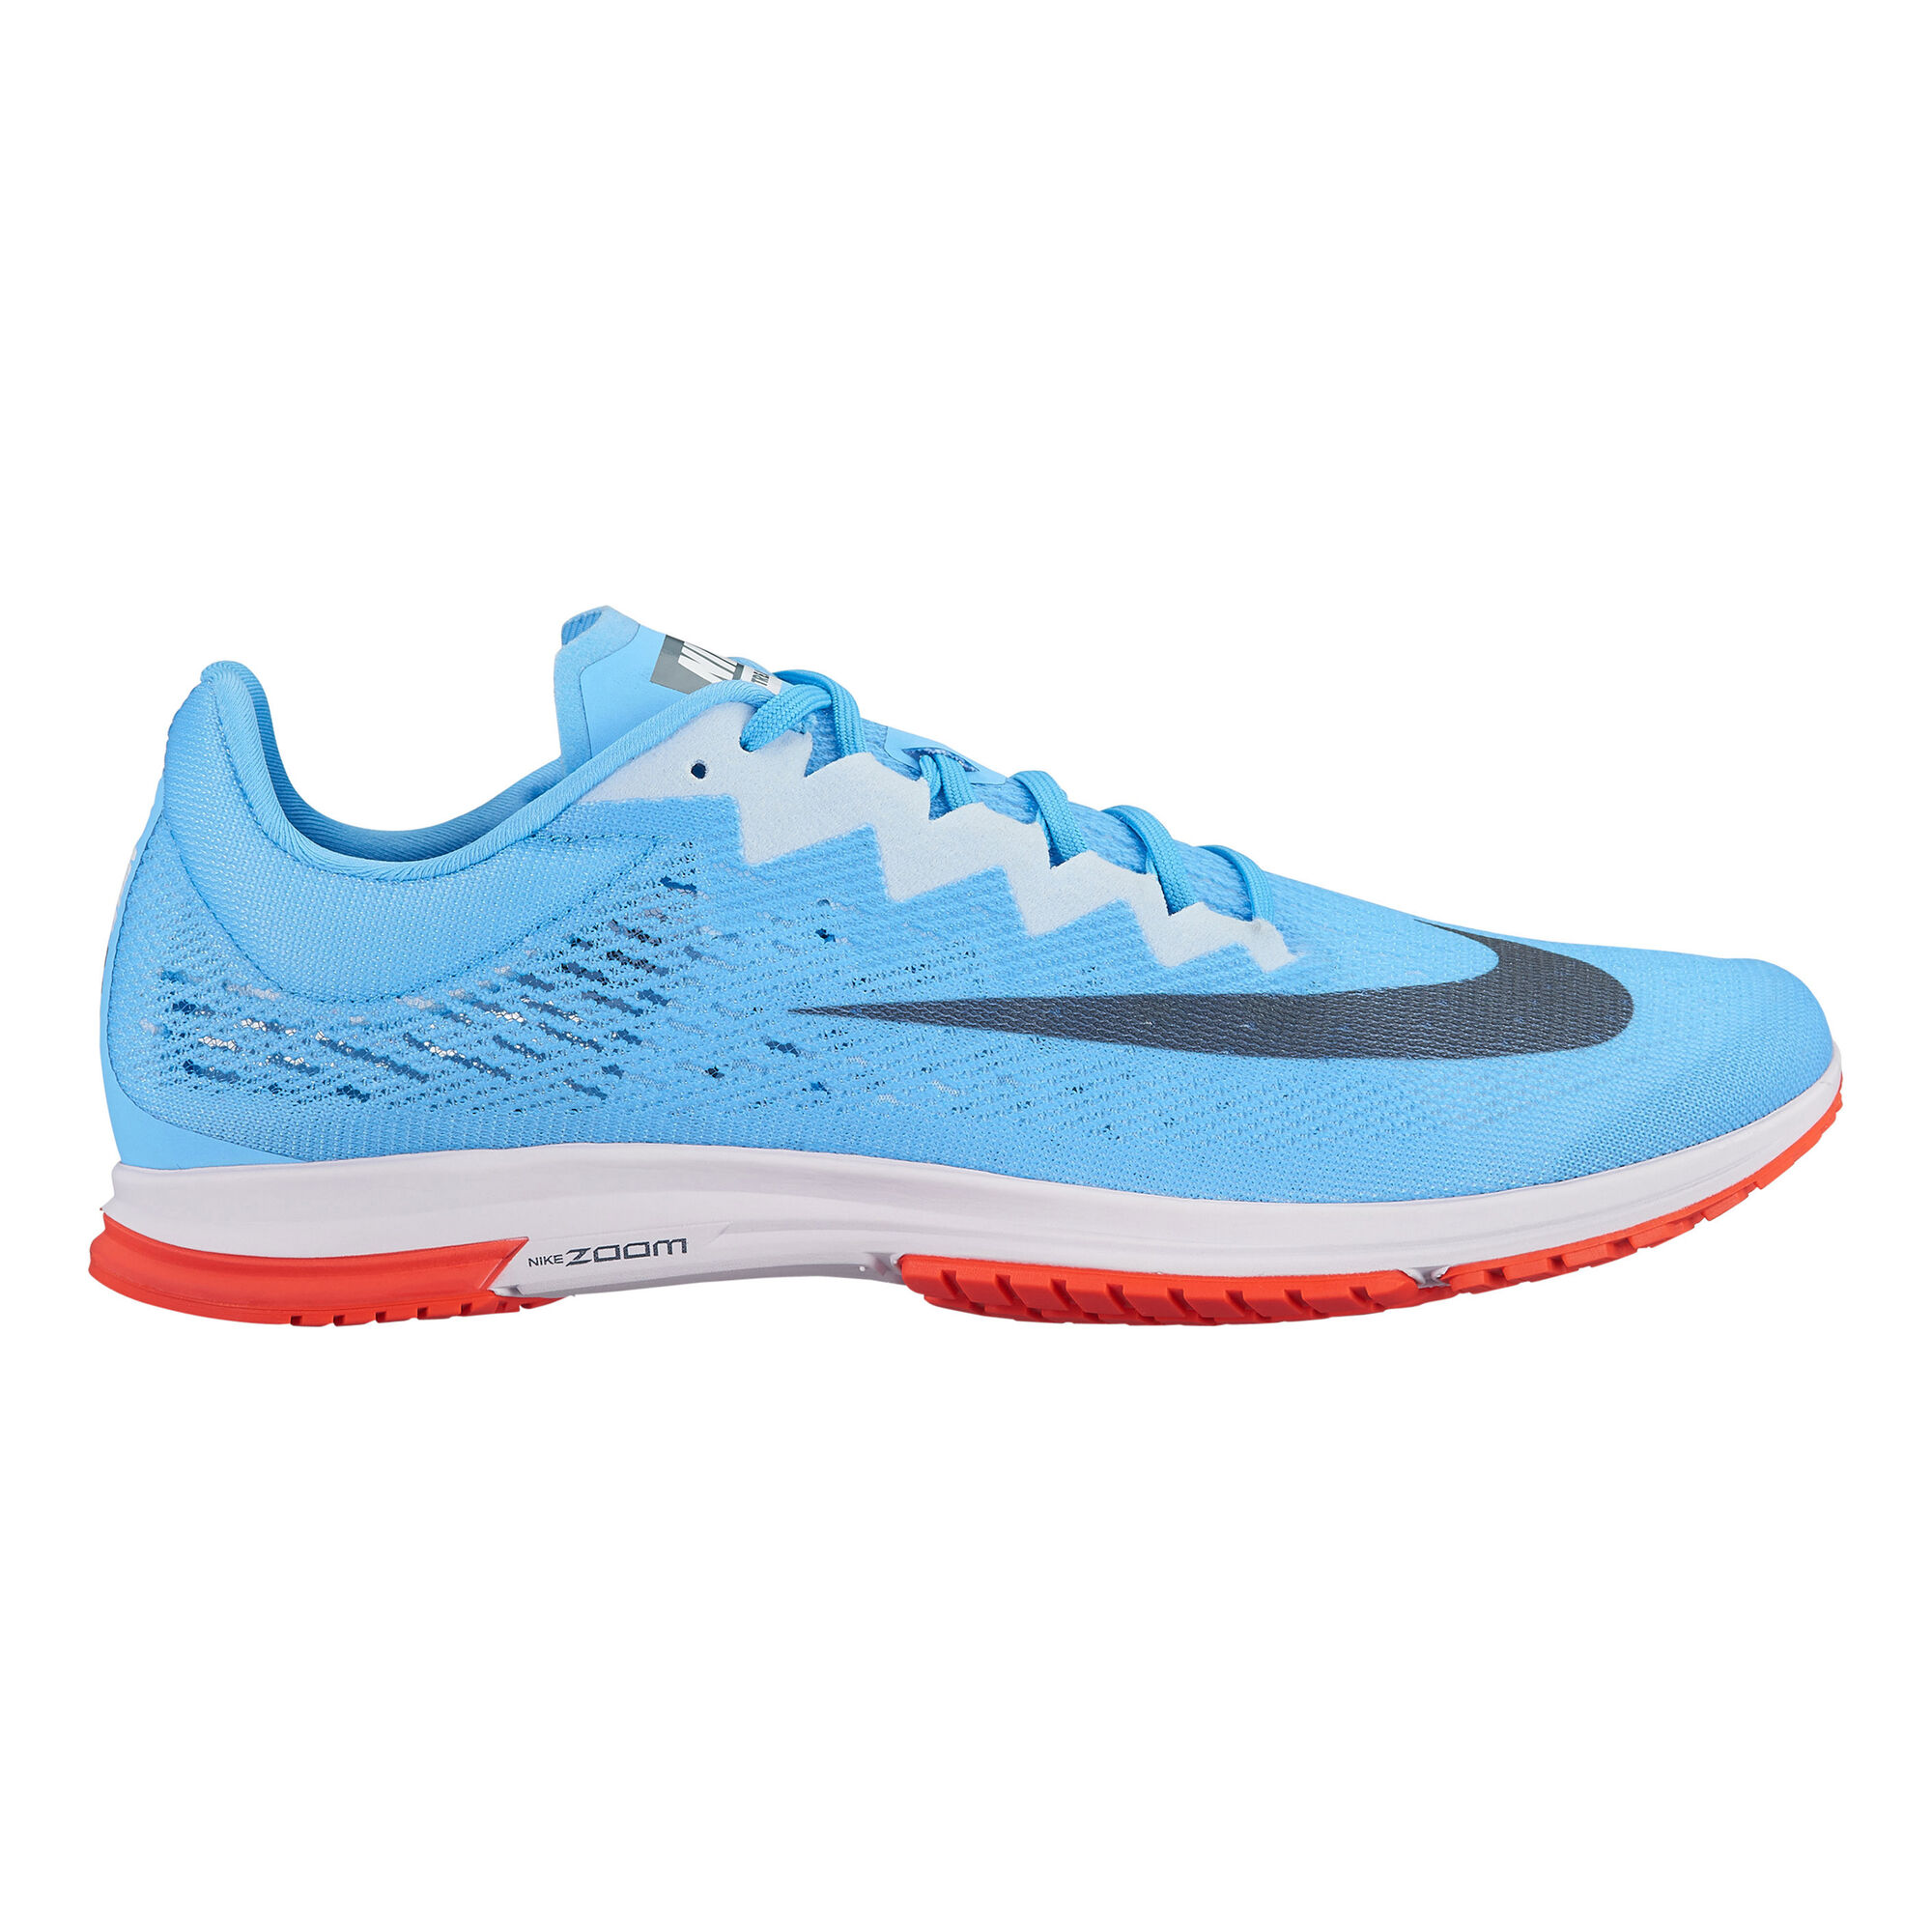 0e277f33aeea buy Nike Zoom Streak LT 4 Spike Shoes - Light Blue